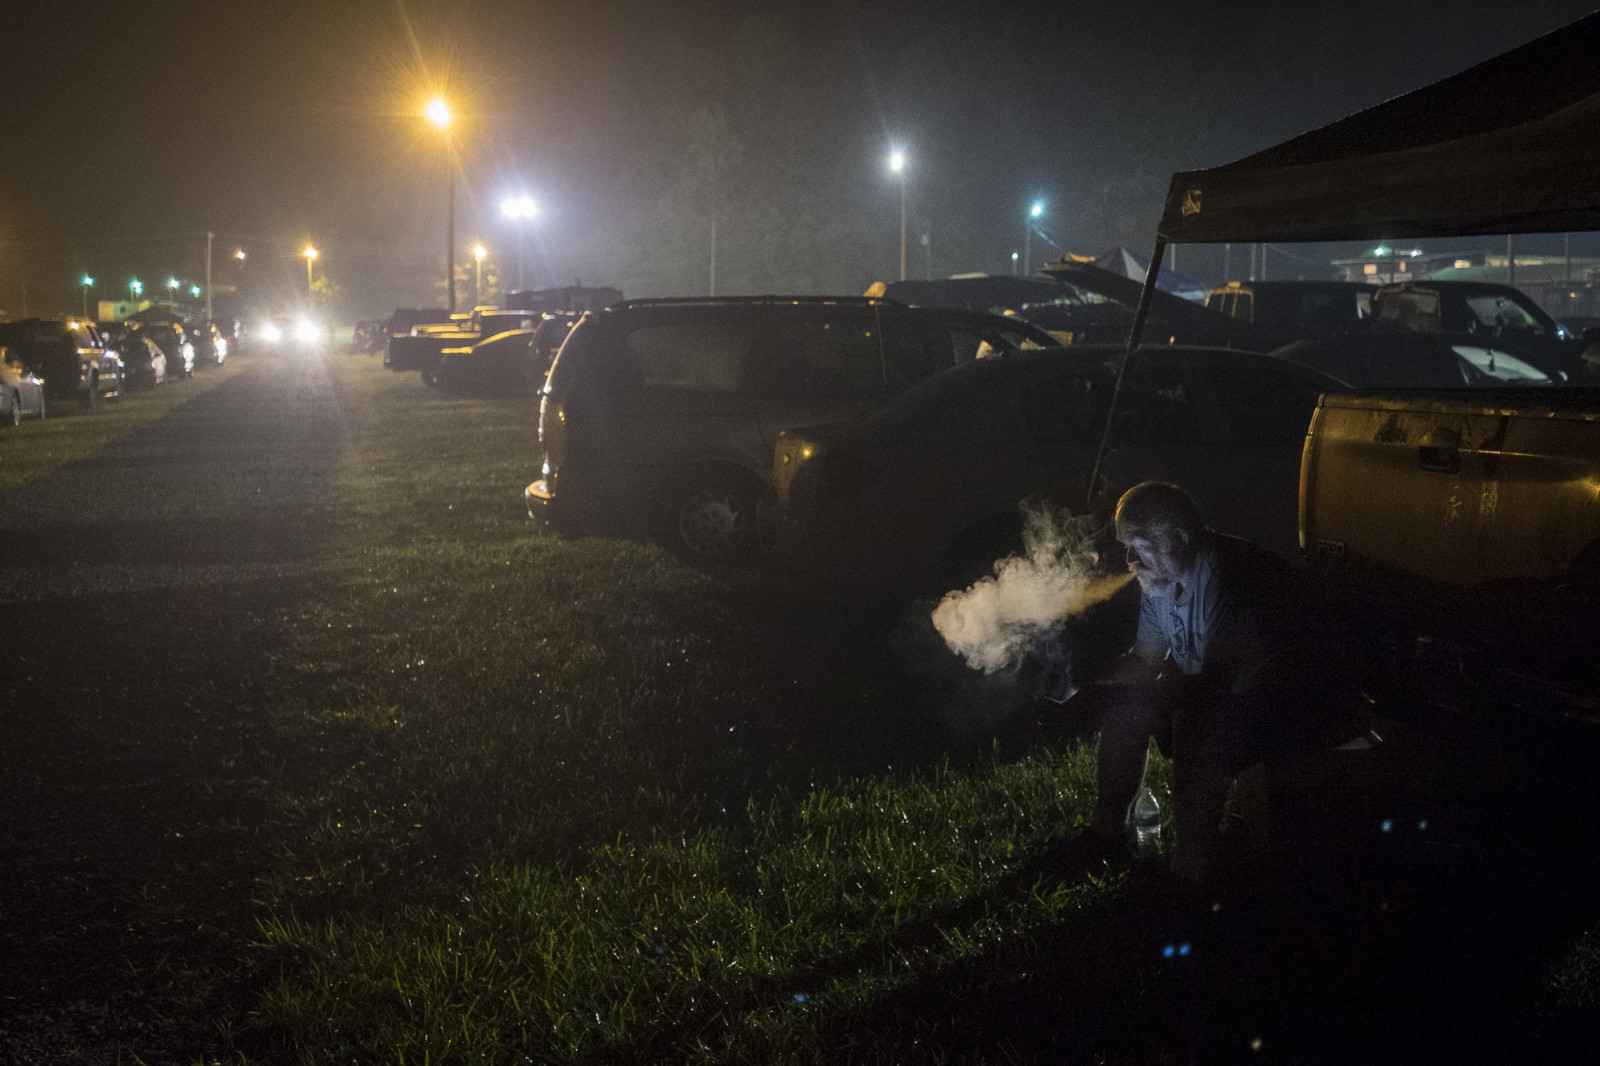 People spend the night in the parking lot at the Wise County Fairgrounds, where they hope to receive free medical care the next day at the 116th annual Remote Area Medical (RAM), clinic in Wise, Virginia. Photo: Pete Marovich/Bloomberg